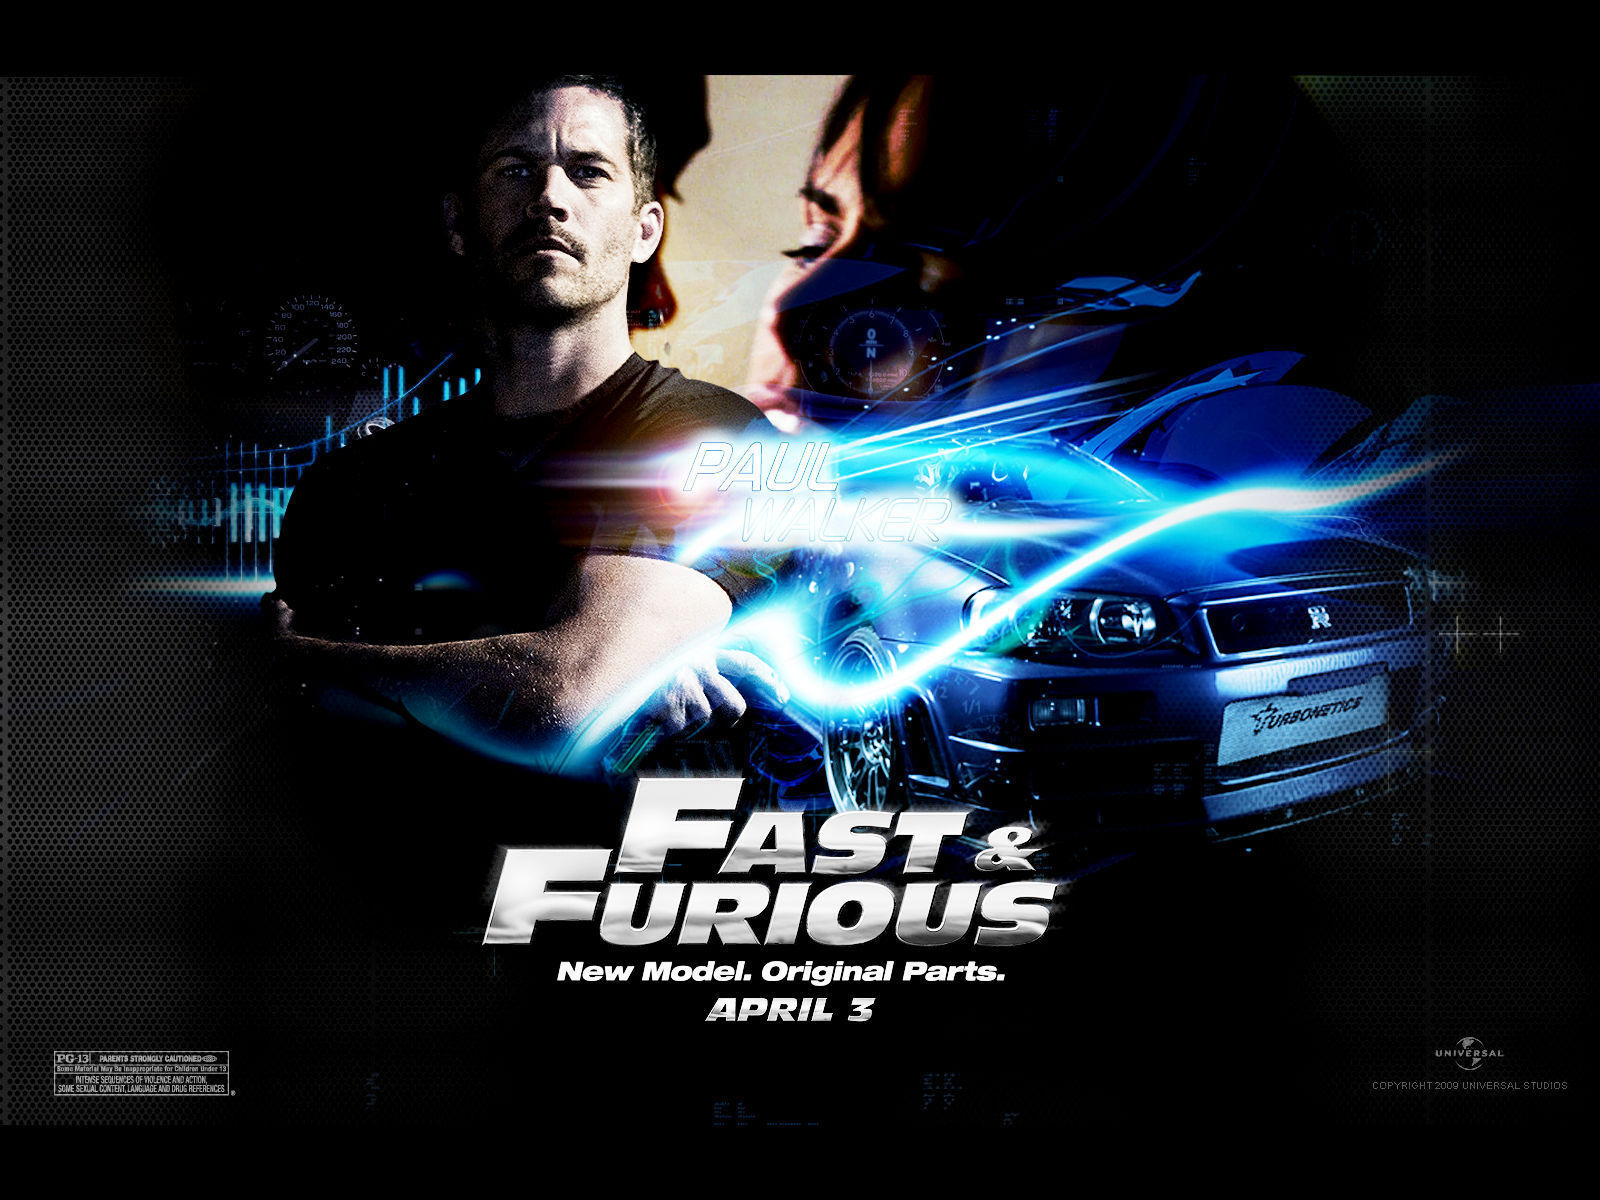 Fast Furious the fast and the furious movies 5012369 1600 1200jpg 1600x1200